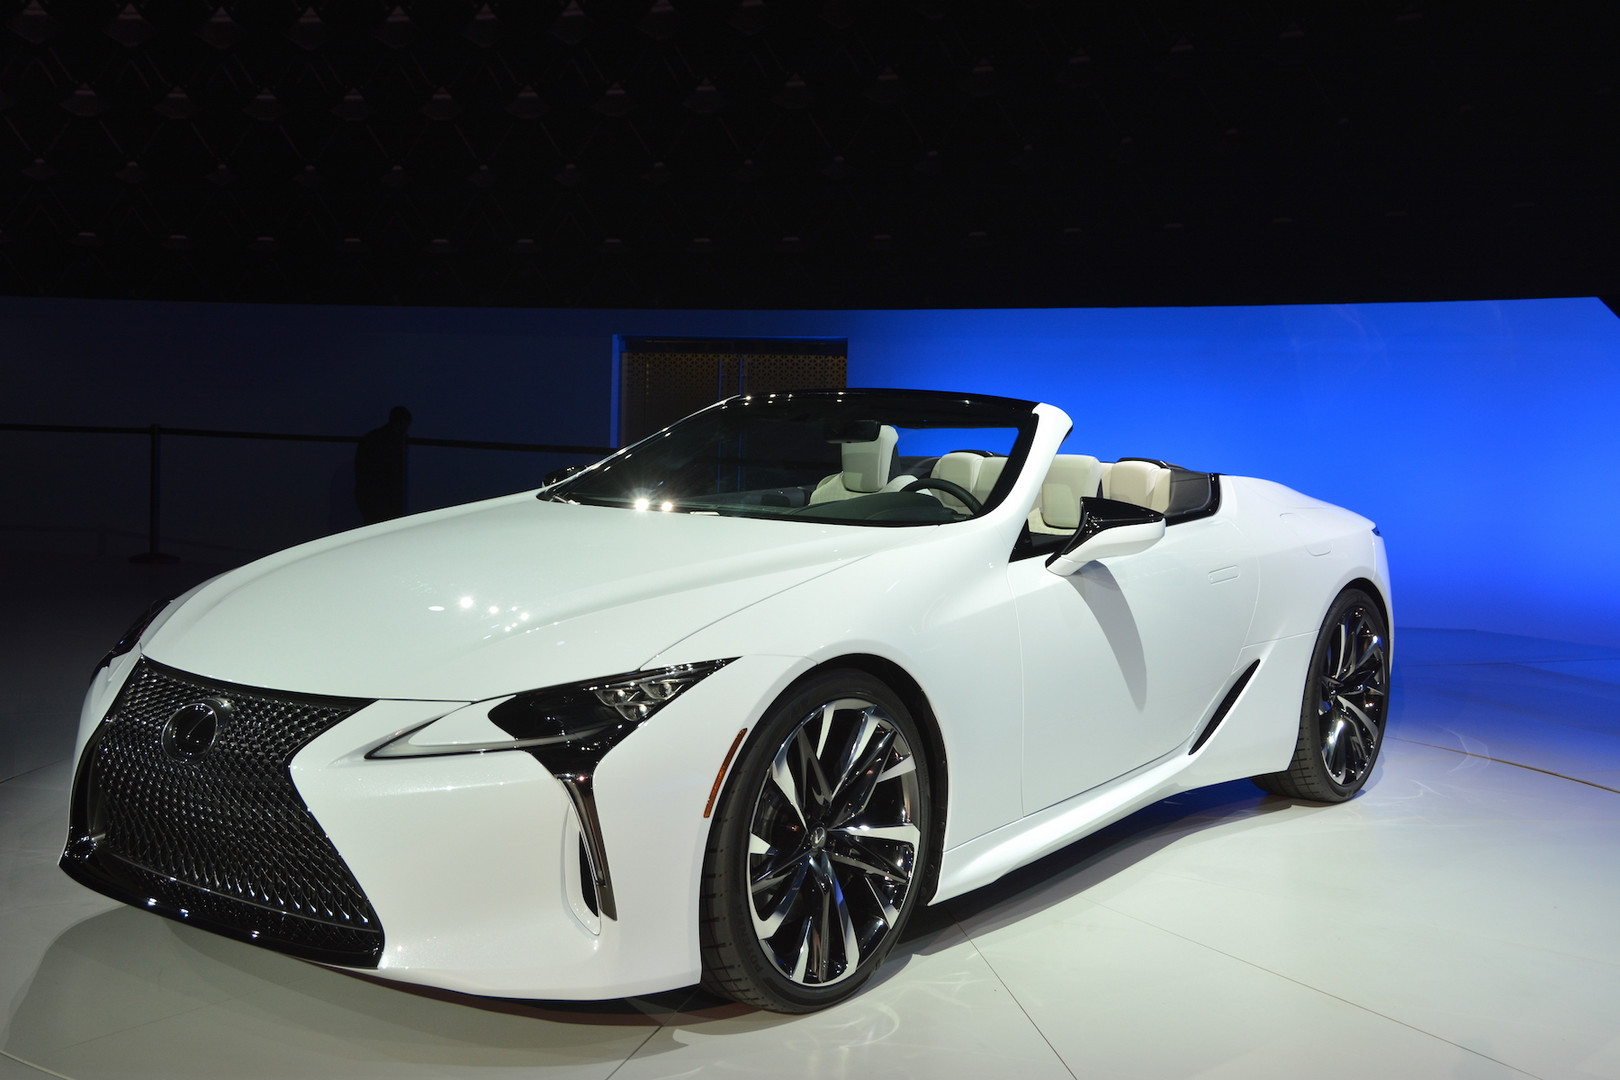 Lexus at the Detroit Motor Show 2019